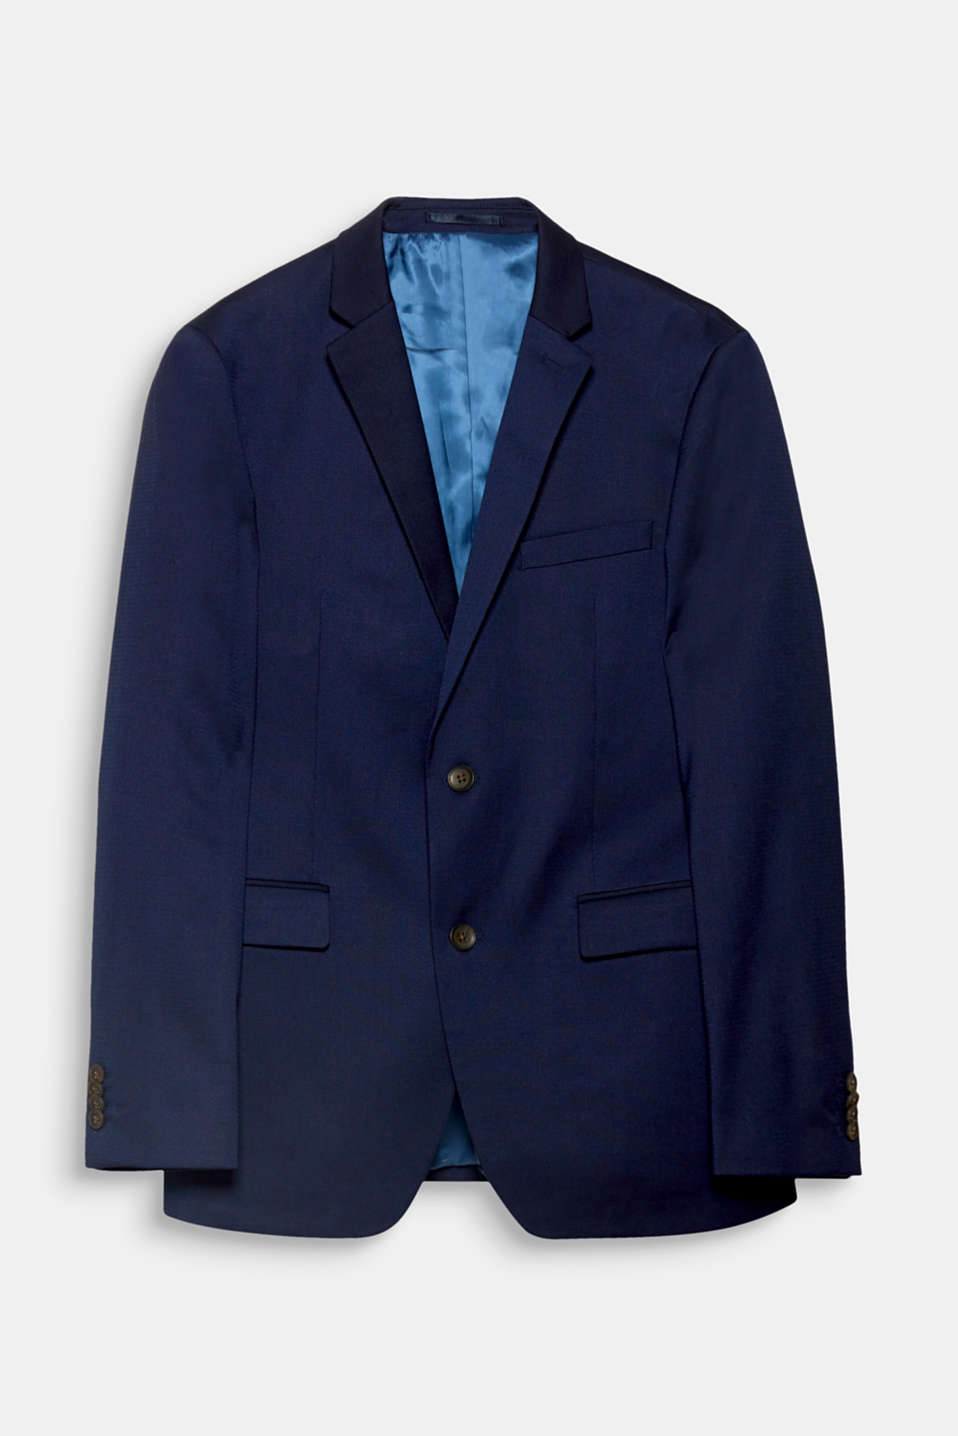 We love texture! The two-tone texture gives this jacket an elegant and smart look.